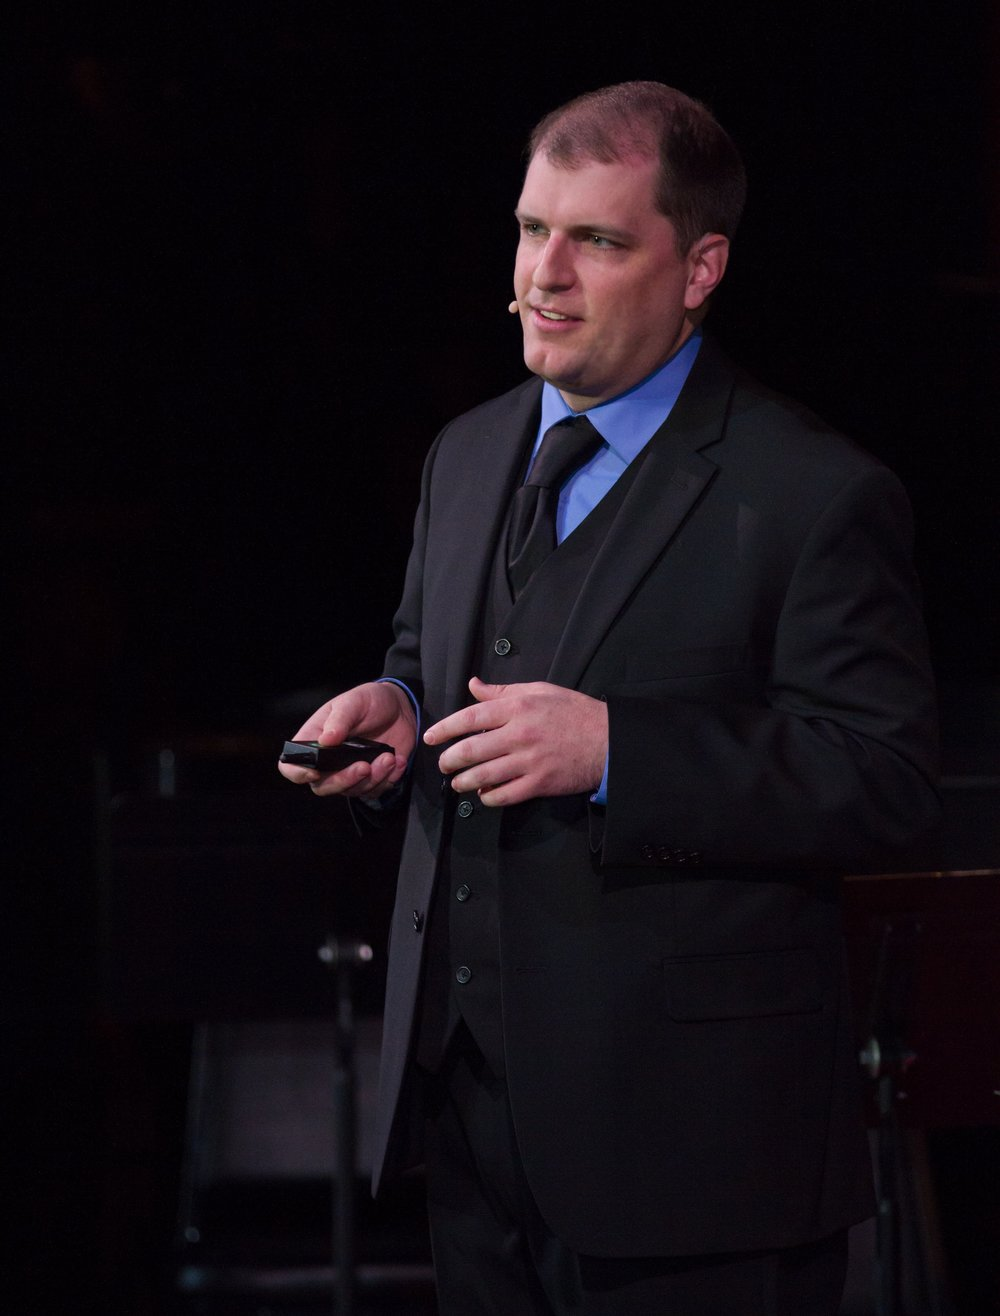 Jordan talks Classical at TEDx